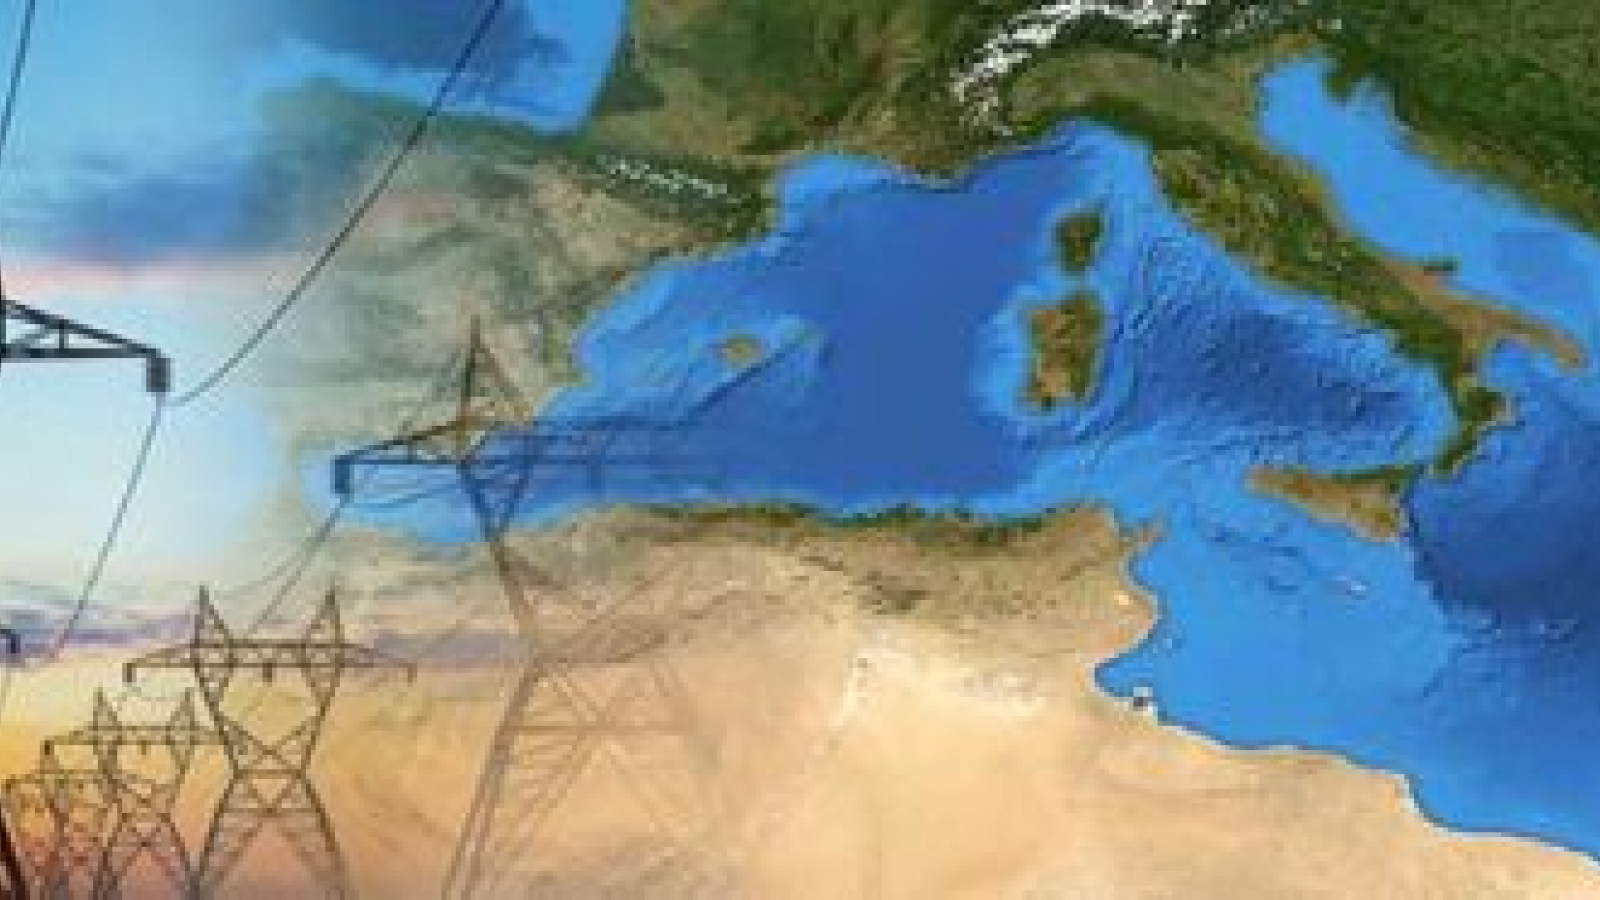 Energy: Antonio Moretti appointed as coordinator of EU-funded Mediterranean Project 2